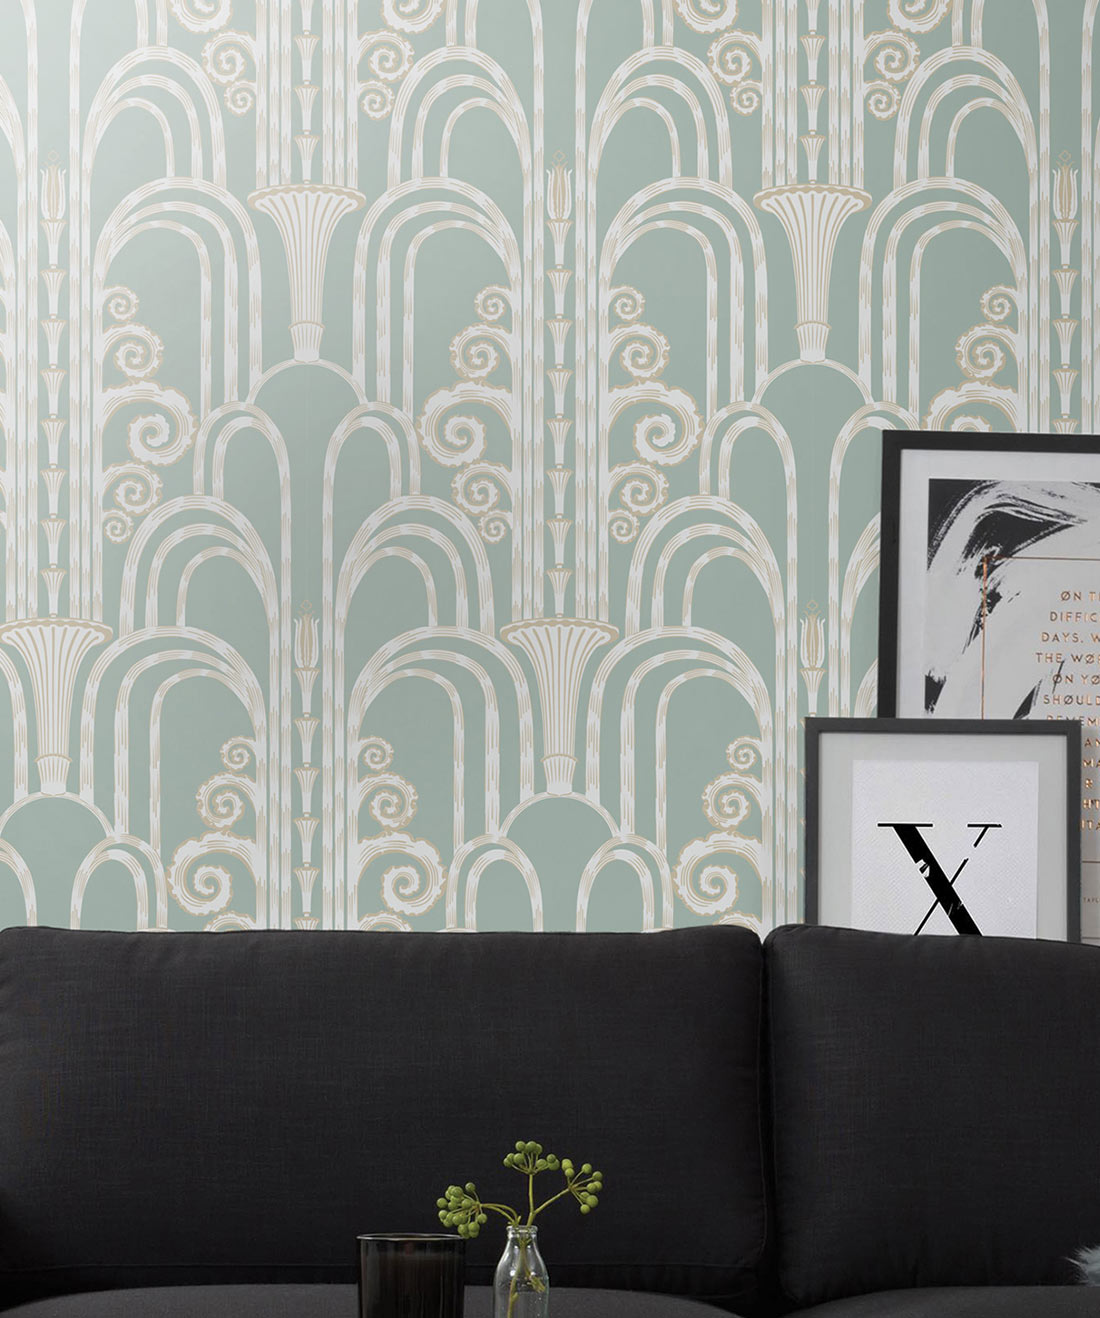 Wallpaper Trends For 2020 • Milton & King